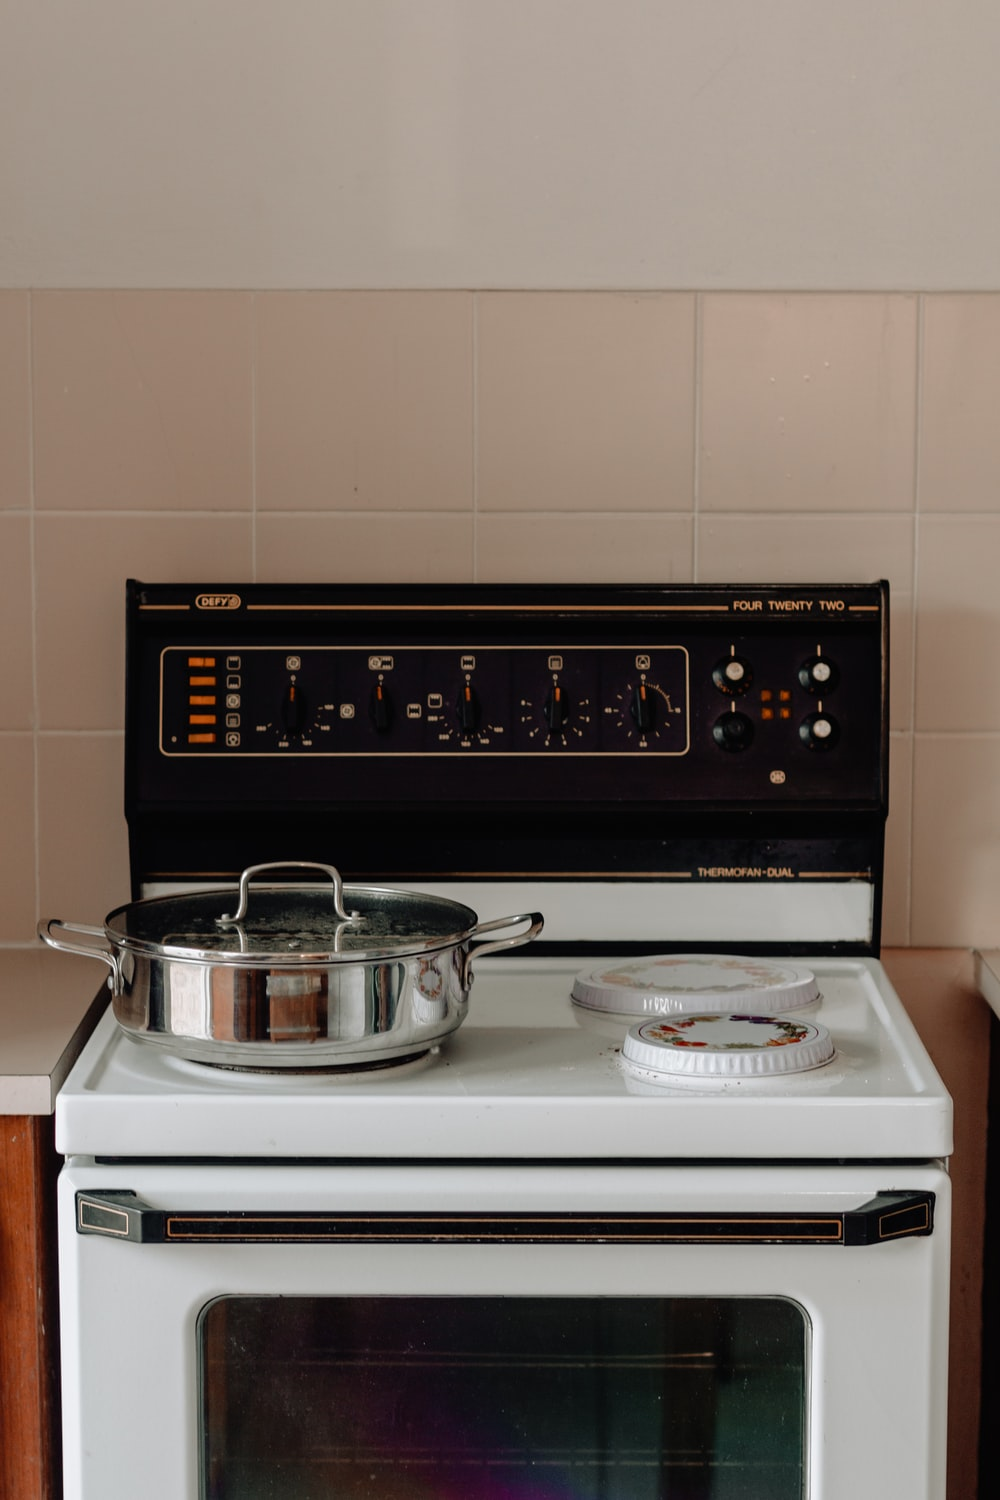 white and black induction stove